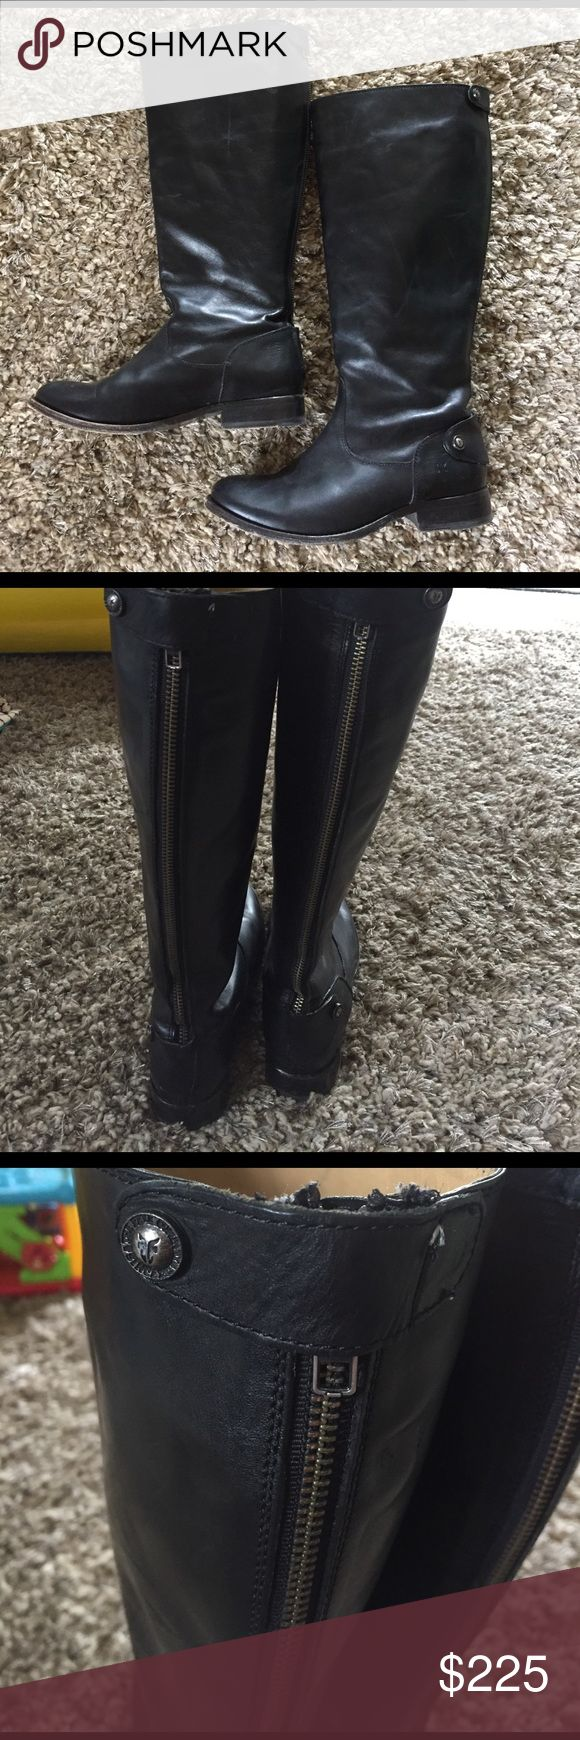 Frye Melissa boots Melissa button back zip boots by Frye. Great condition! Size 7 with extended calf. All other info in the 7th pic Frye Shoes